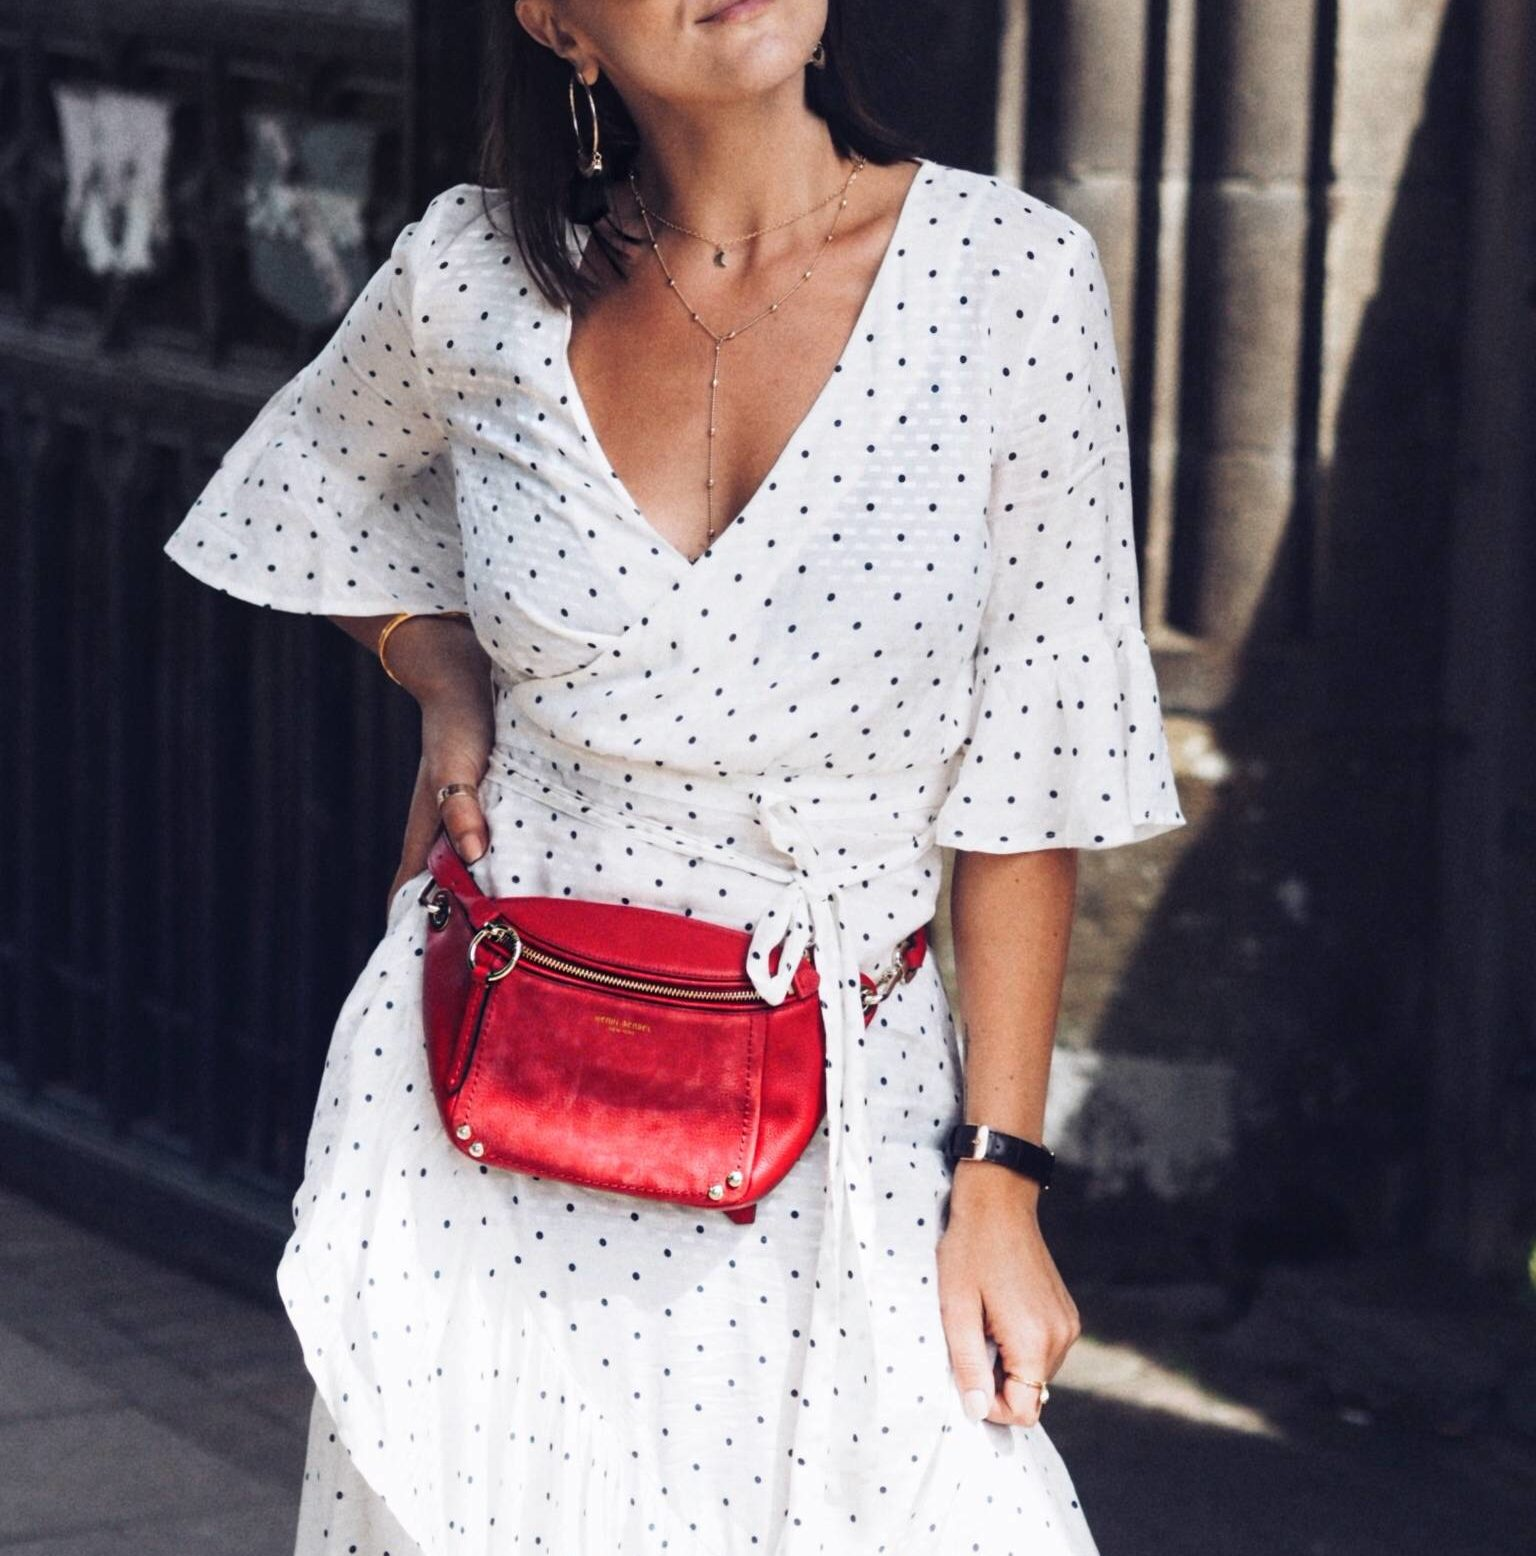 LAFOTKA-Henri-Bendel-belt-bag-styling-Glasgow-Blogger